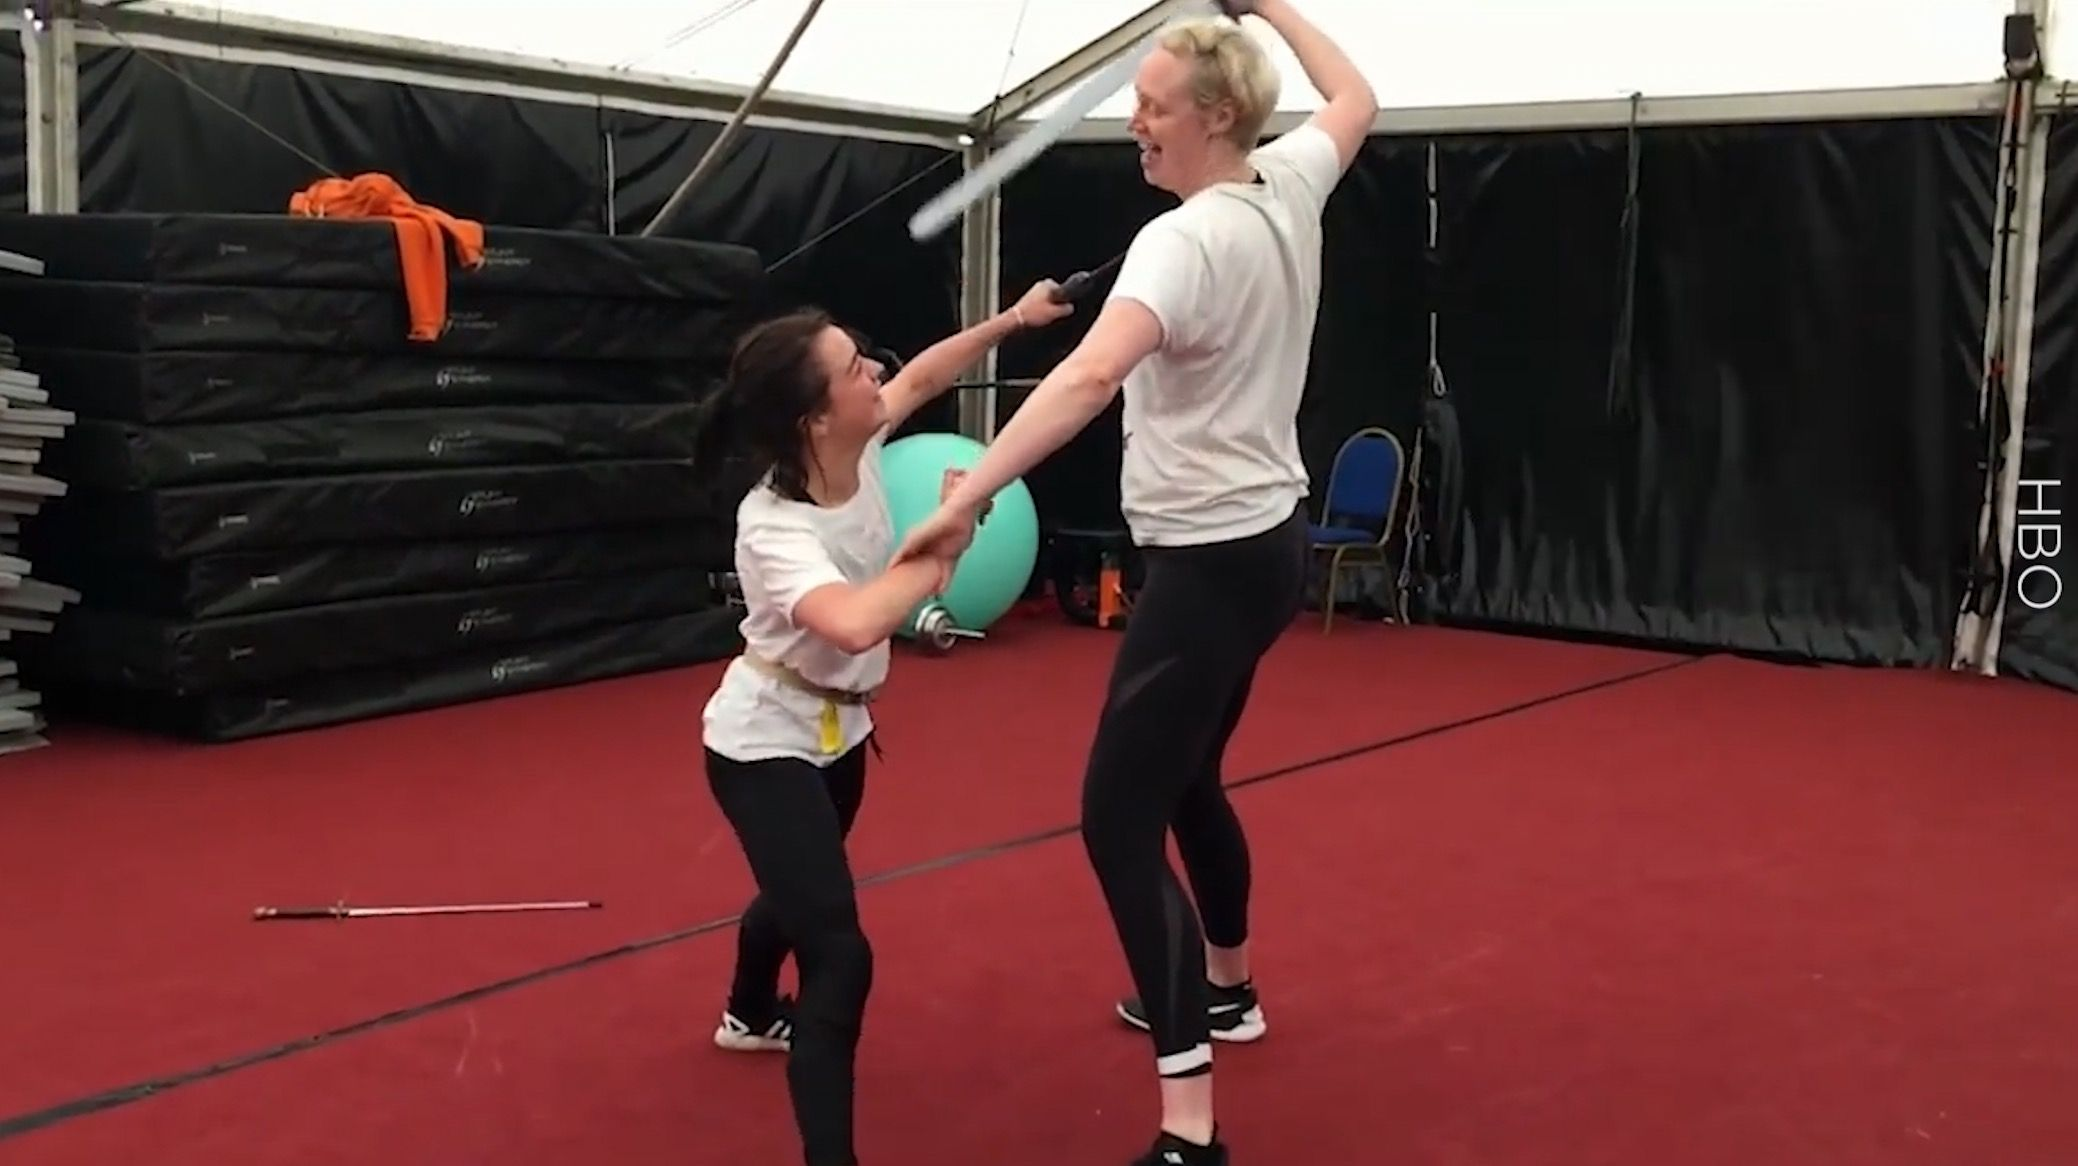 This Video Of Maisie Williams Training To Do Arya Stark's Knife Flip For 'Game Of Thrones' Is Insane